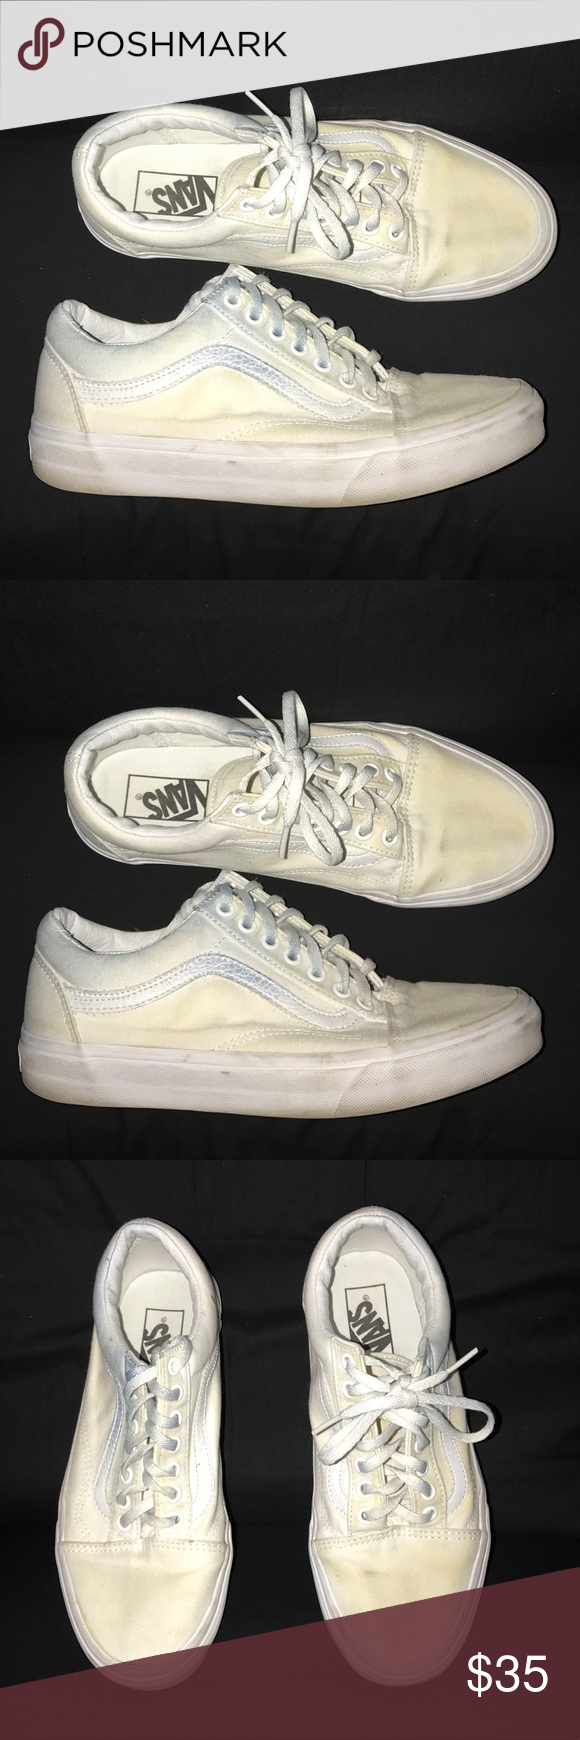 how to clean white vans shoes that